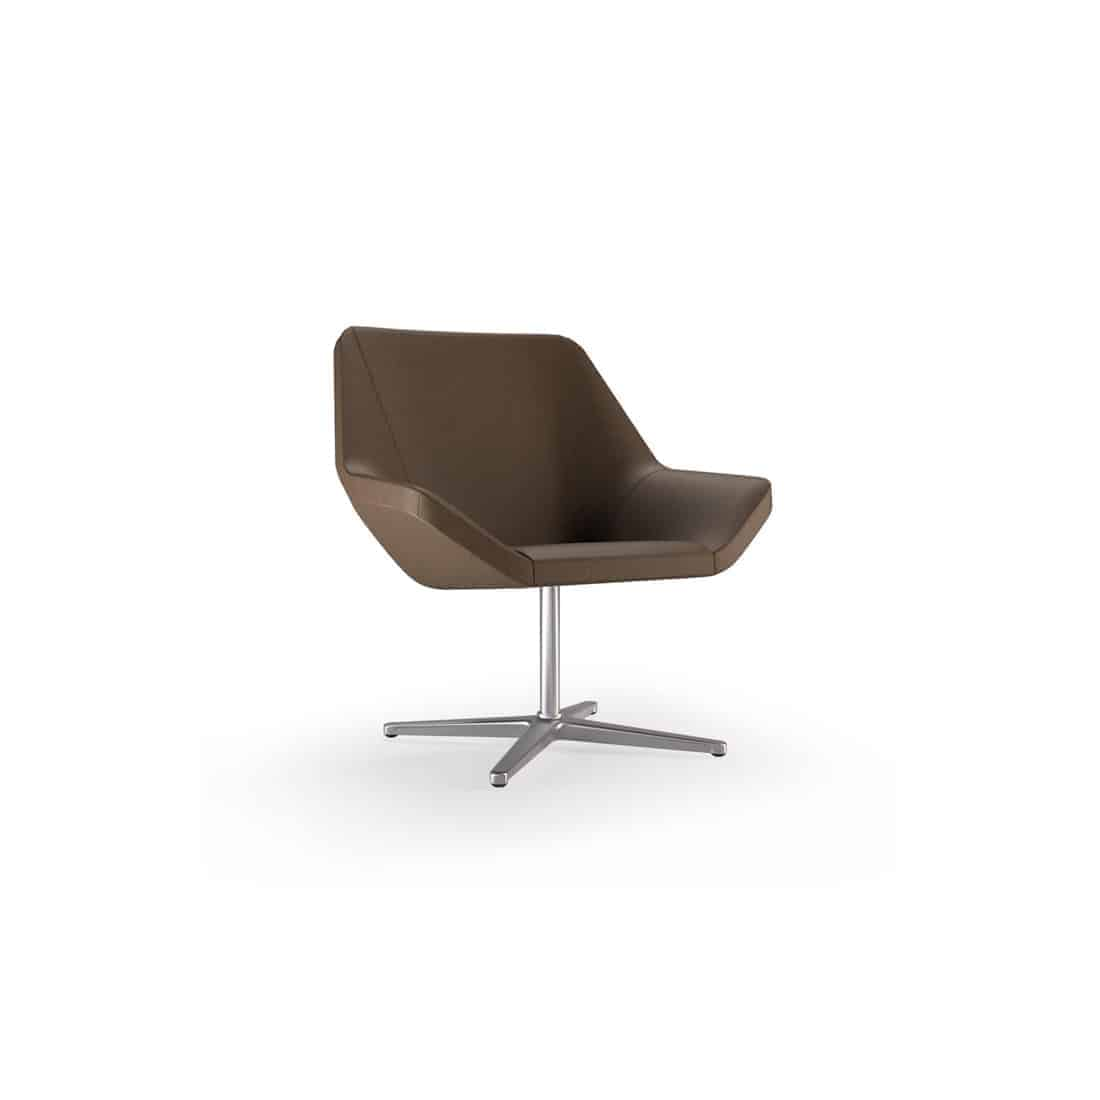 Keilhauer Cahoots Relax Chair Polished Aluminum 4-star pedestal base Fully upholstered leather 31 x 30 x 30 in